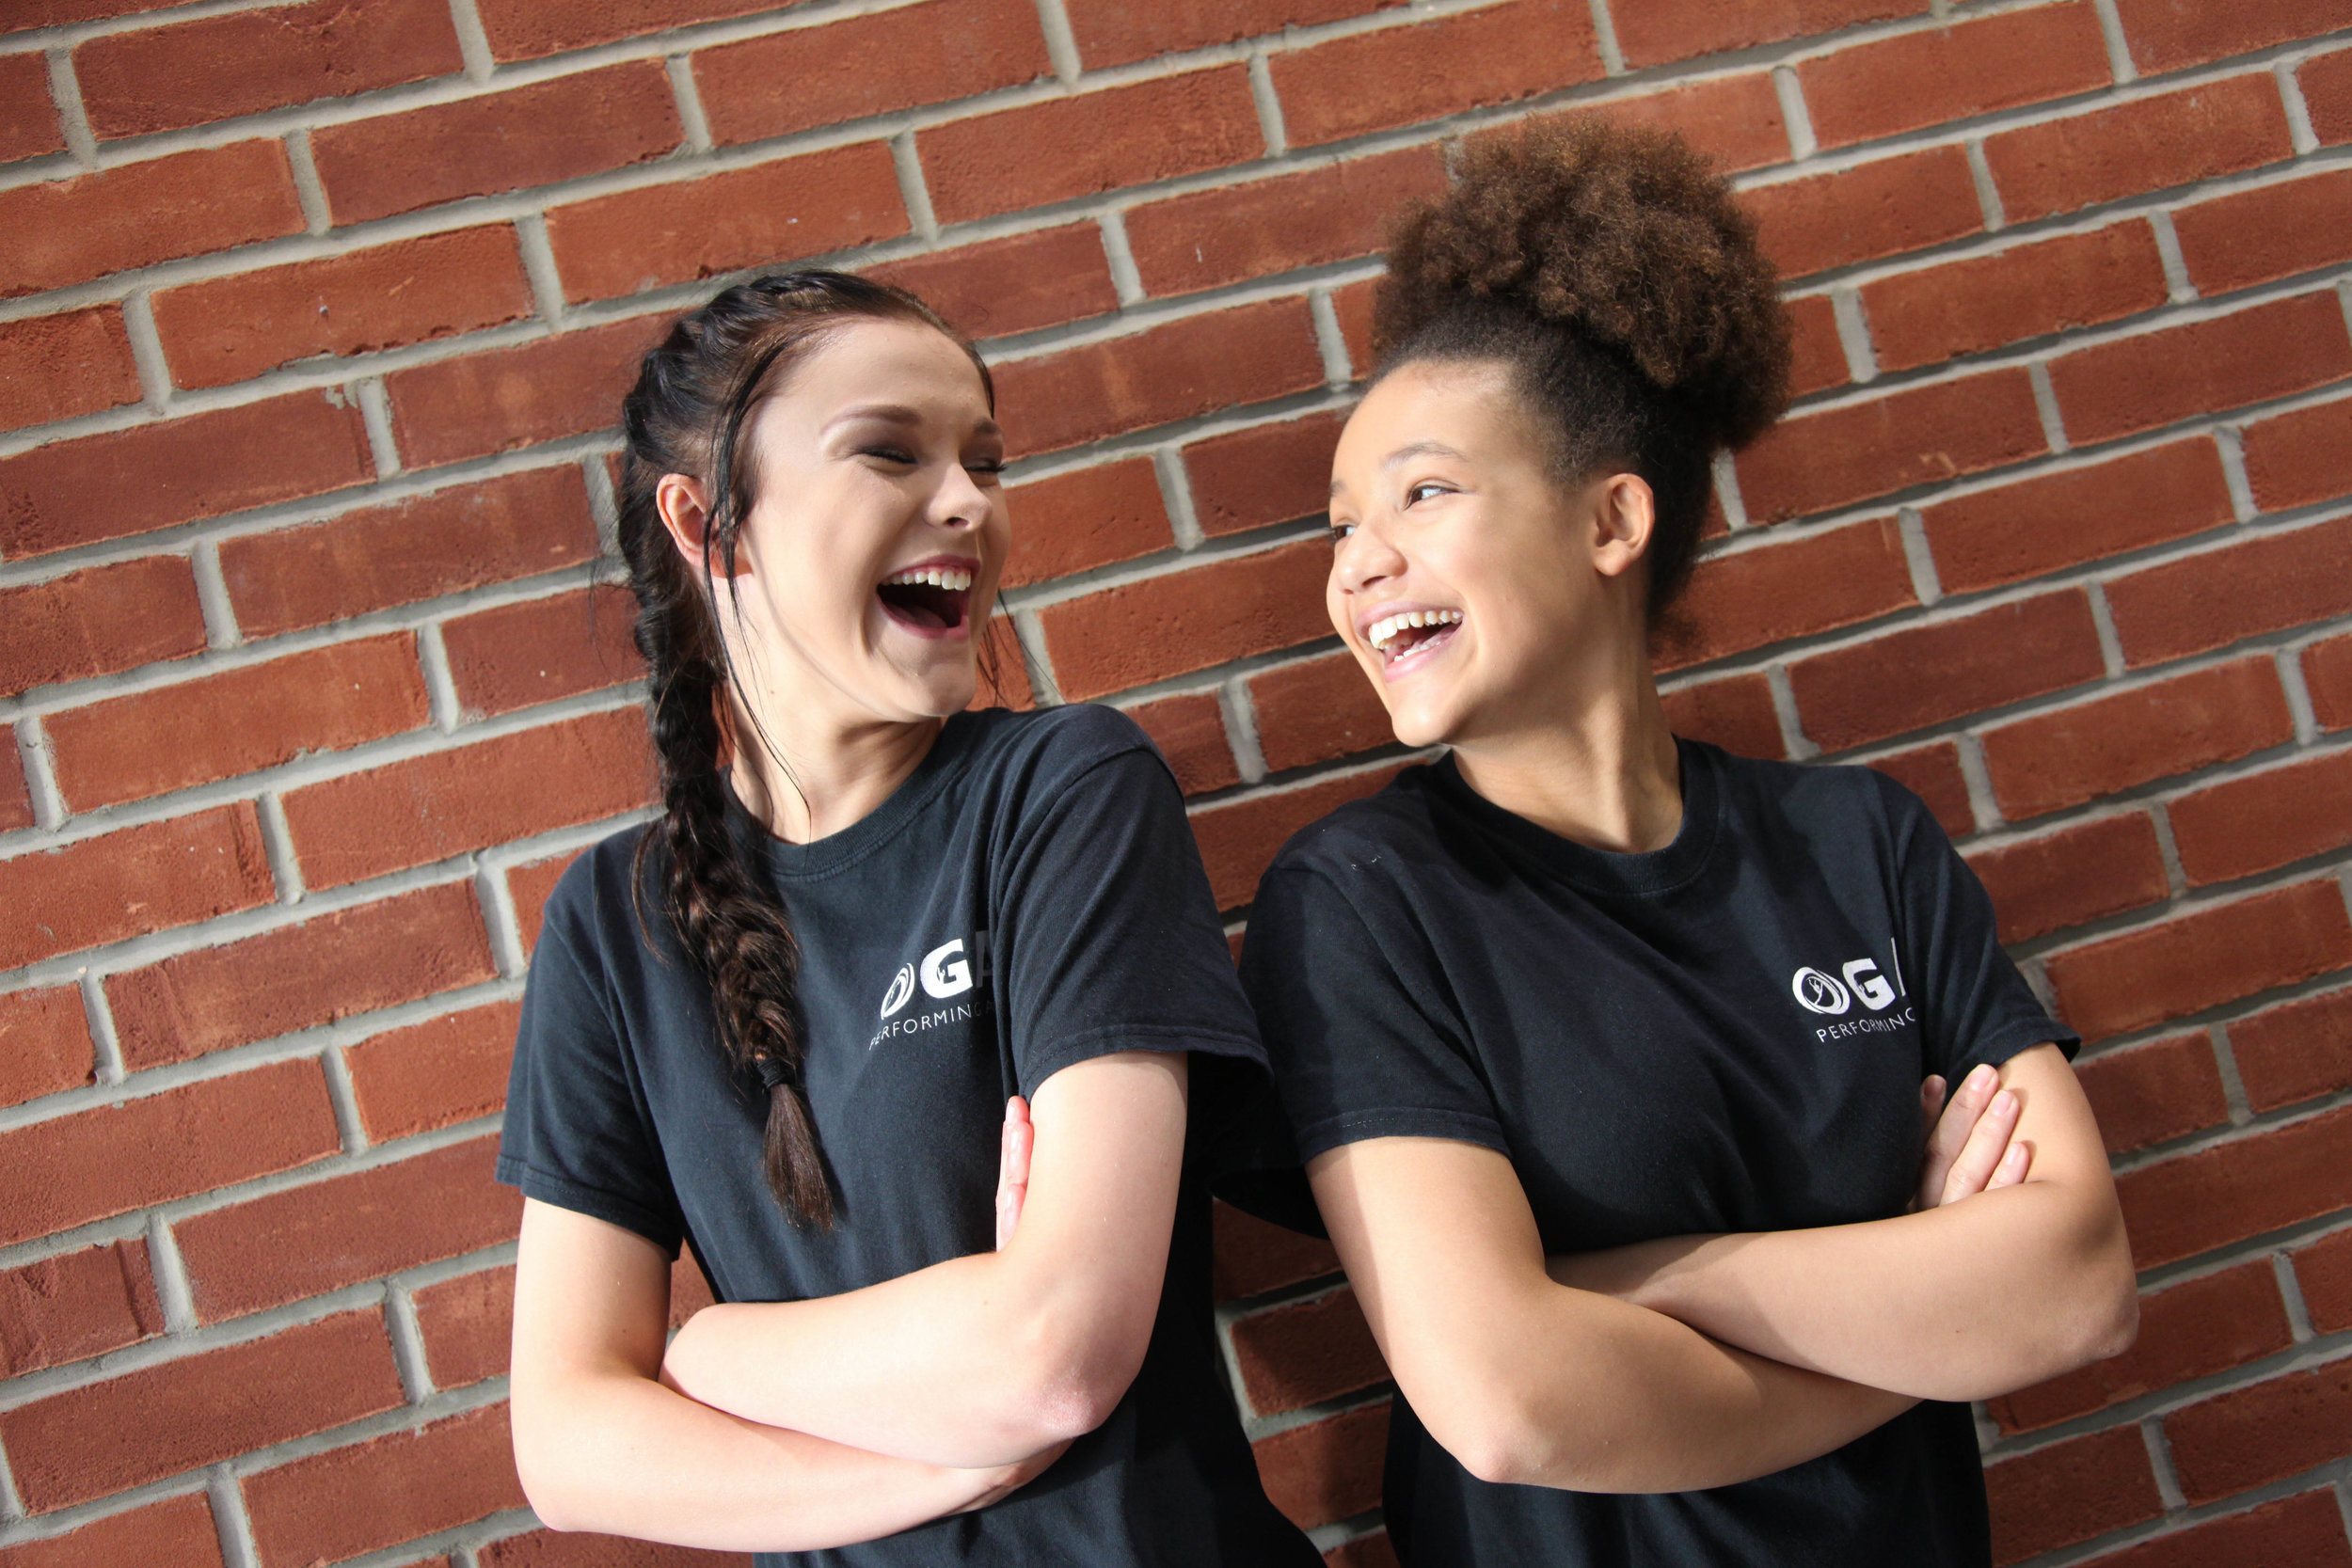 Rich Entitlement - Across Year 7 and 8, students experience a broad range of subjects studying English, maths and science alongside a range of expressive arts subjects, geography, history, religious education through our Life programme, computer science, technology subjects, a modern foreign language and physical education.Academic & Technicalstudy at Level 1 / Level 2 (including GCSE) offers a wide entitlement to subjects including those subject which make up the Full English Baccalaureate*: GCSE in one English (Literature or English Language), mathematics, two sciences (including computer science), one humanities subject (geography or history) and a modern foreign language. There is opportunity to study triple or combined sciences and a wide selection of open subjects are offered including a range of expressive arts subjects, religious education, technology subjects, physical education, social sciences including Business Studies etc. Our curriculum is designed to enable large numbers of students to choose creative subjects because we create the time and flexibility to study them up to 16 years old. *To achieve the Full English Baccalaureate students must achieve a Grade 5 in each of these subjects